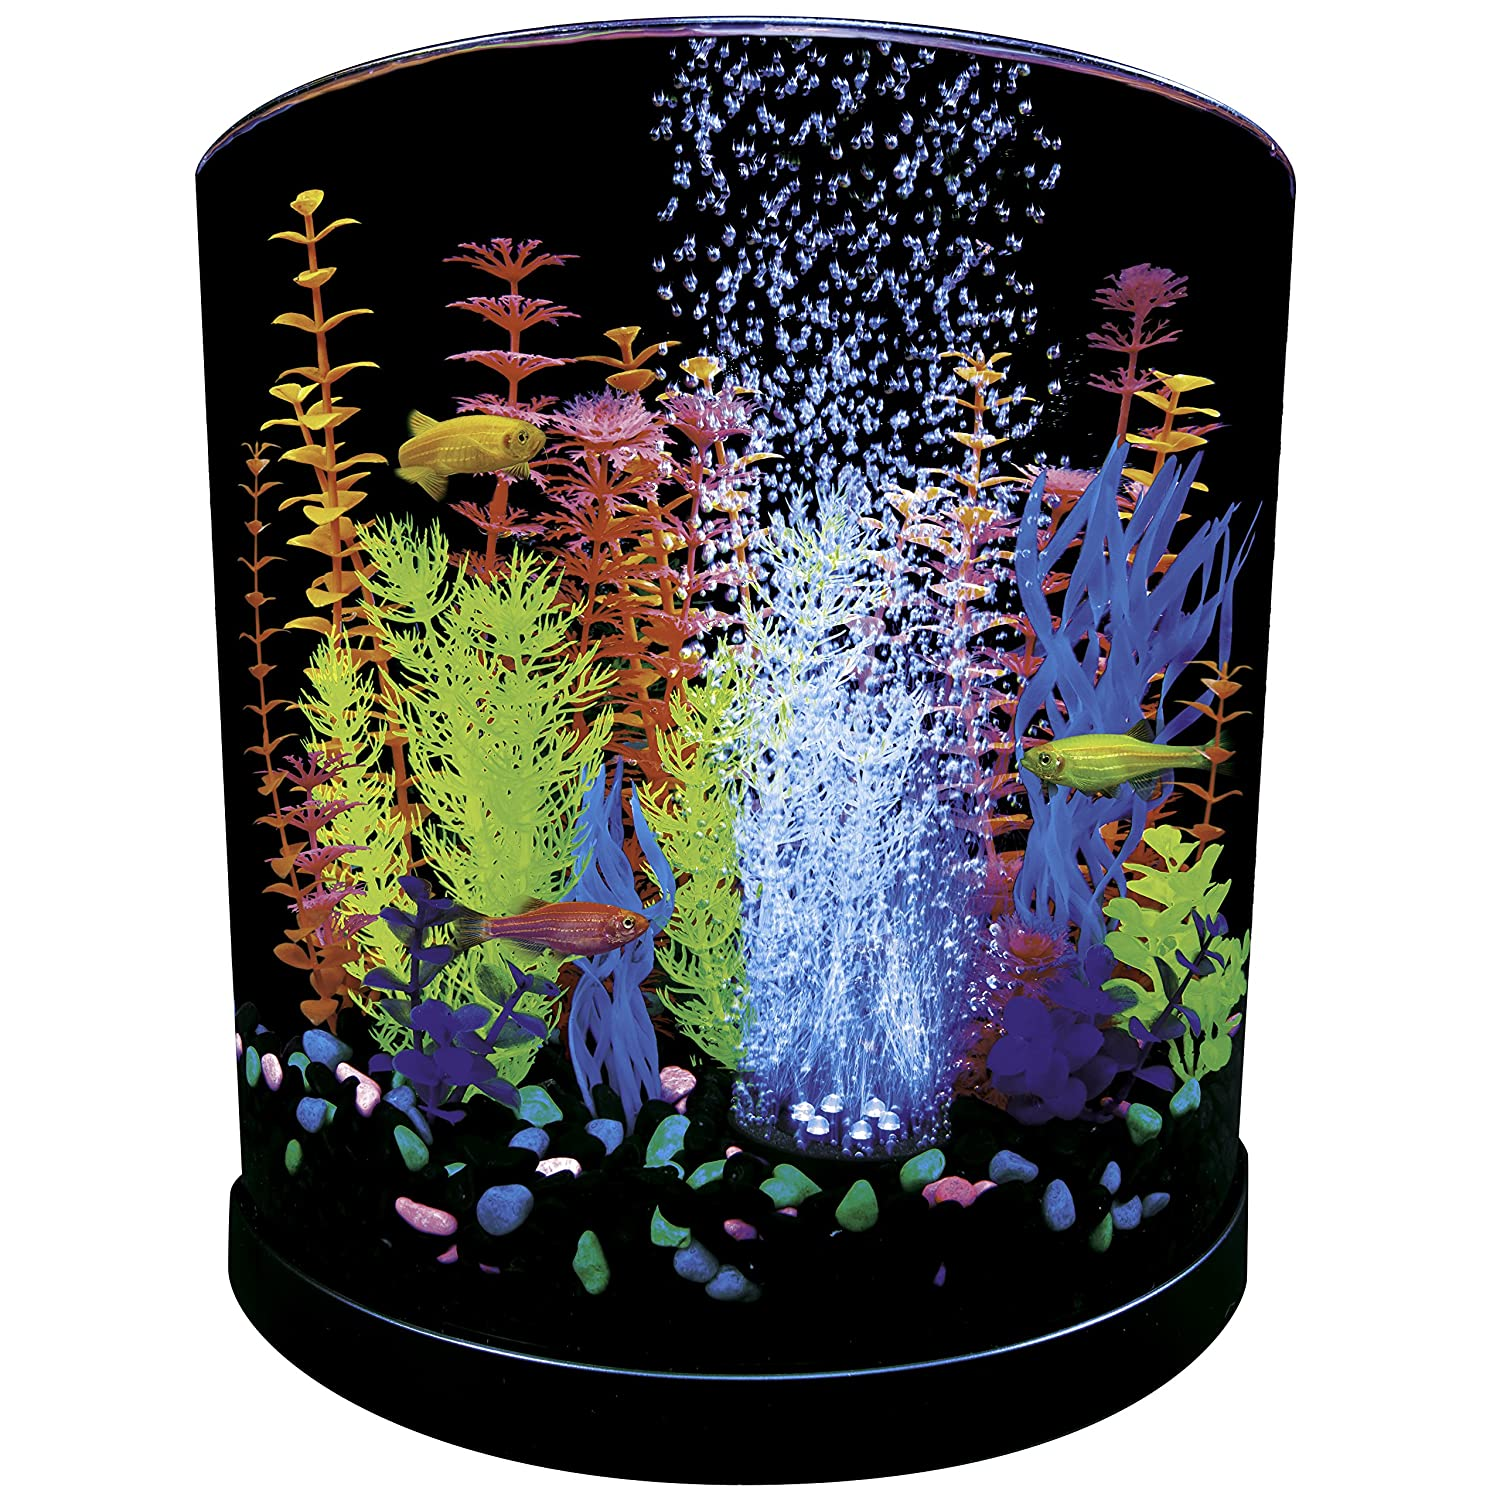 Tetra 3 Gallon Half Moon Fishtank In Many Styles Fish & Aquariums Aquariums & Tanks